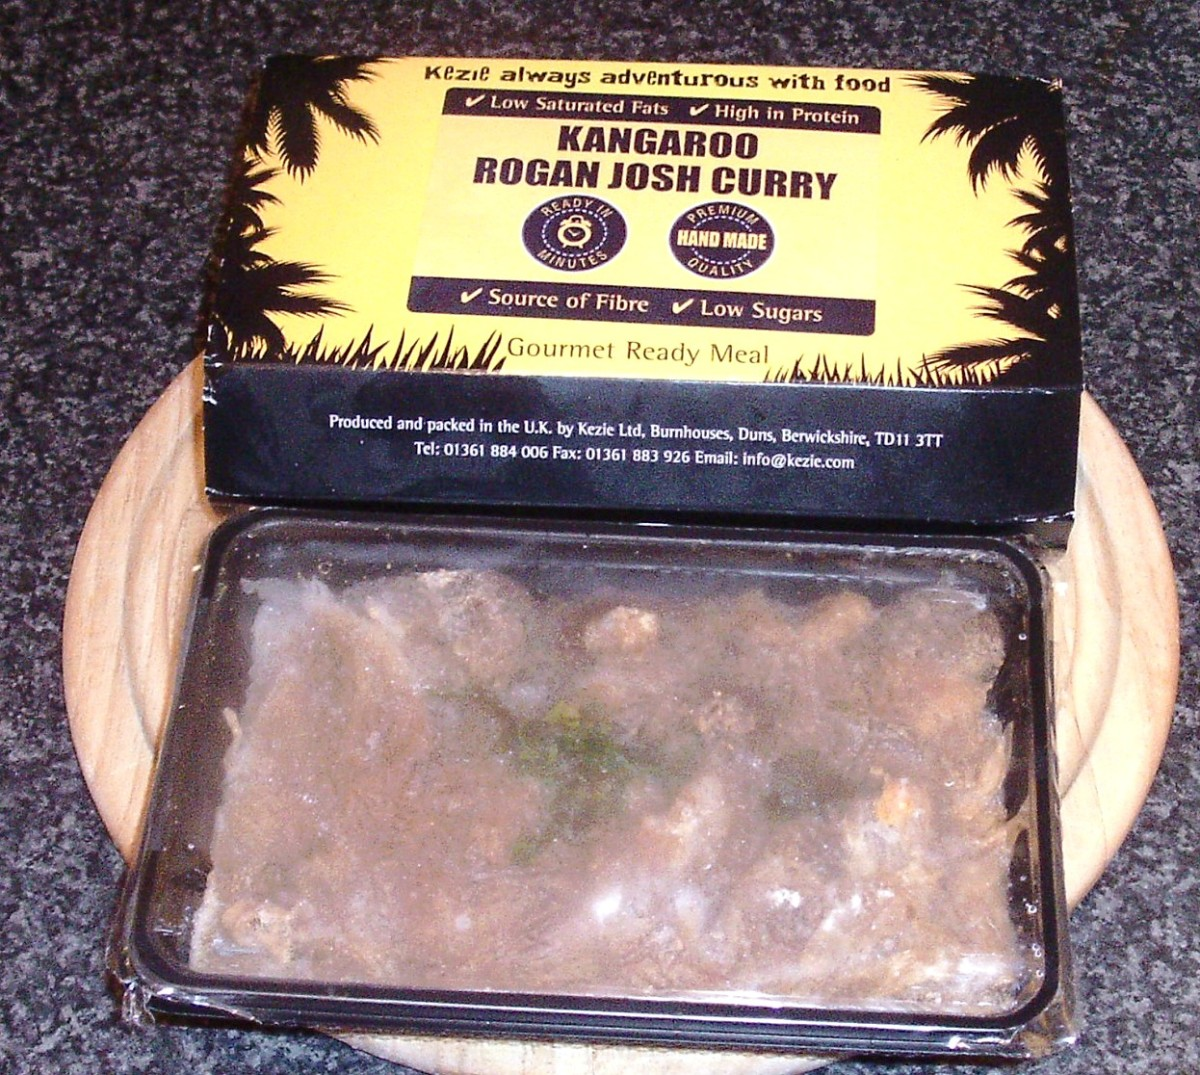 Frozen kangaroo rogan josh ready meal